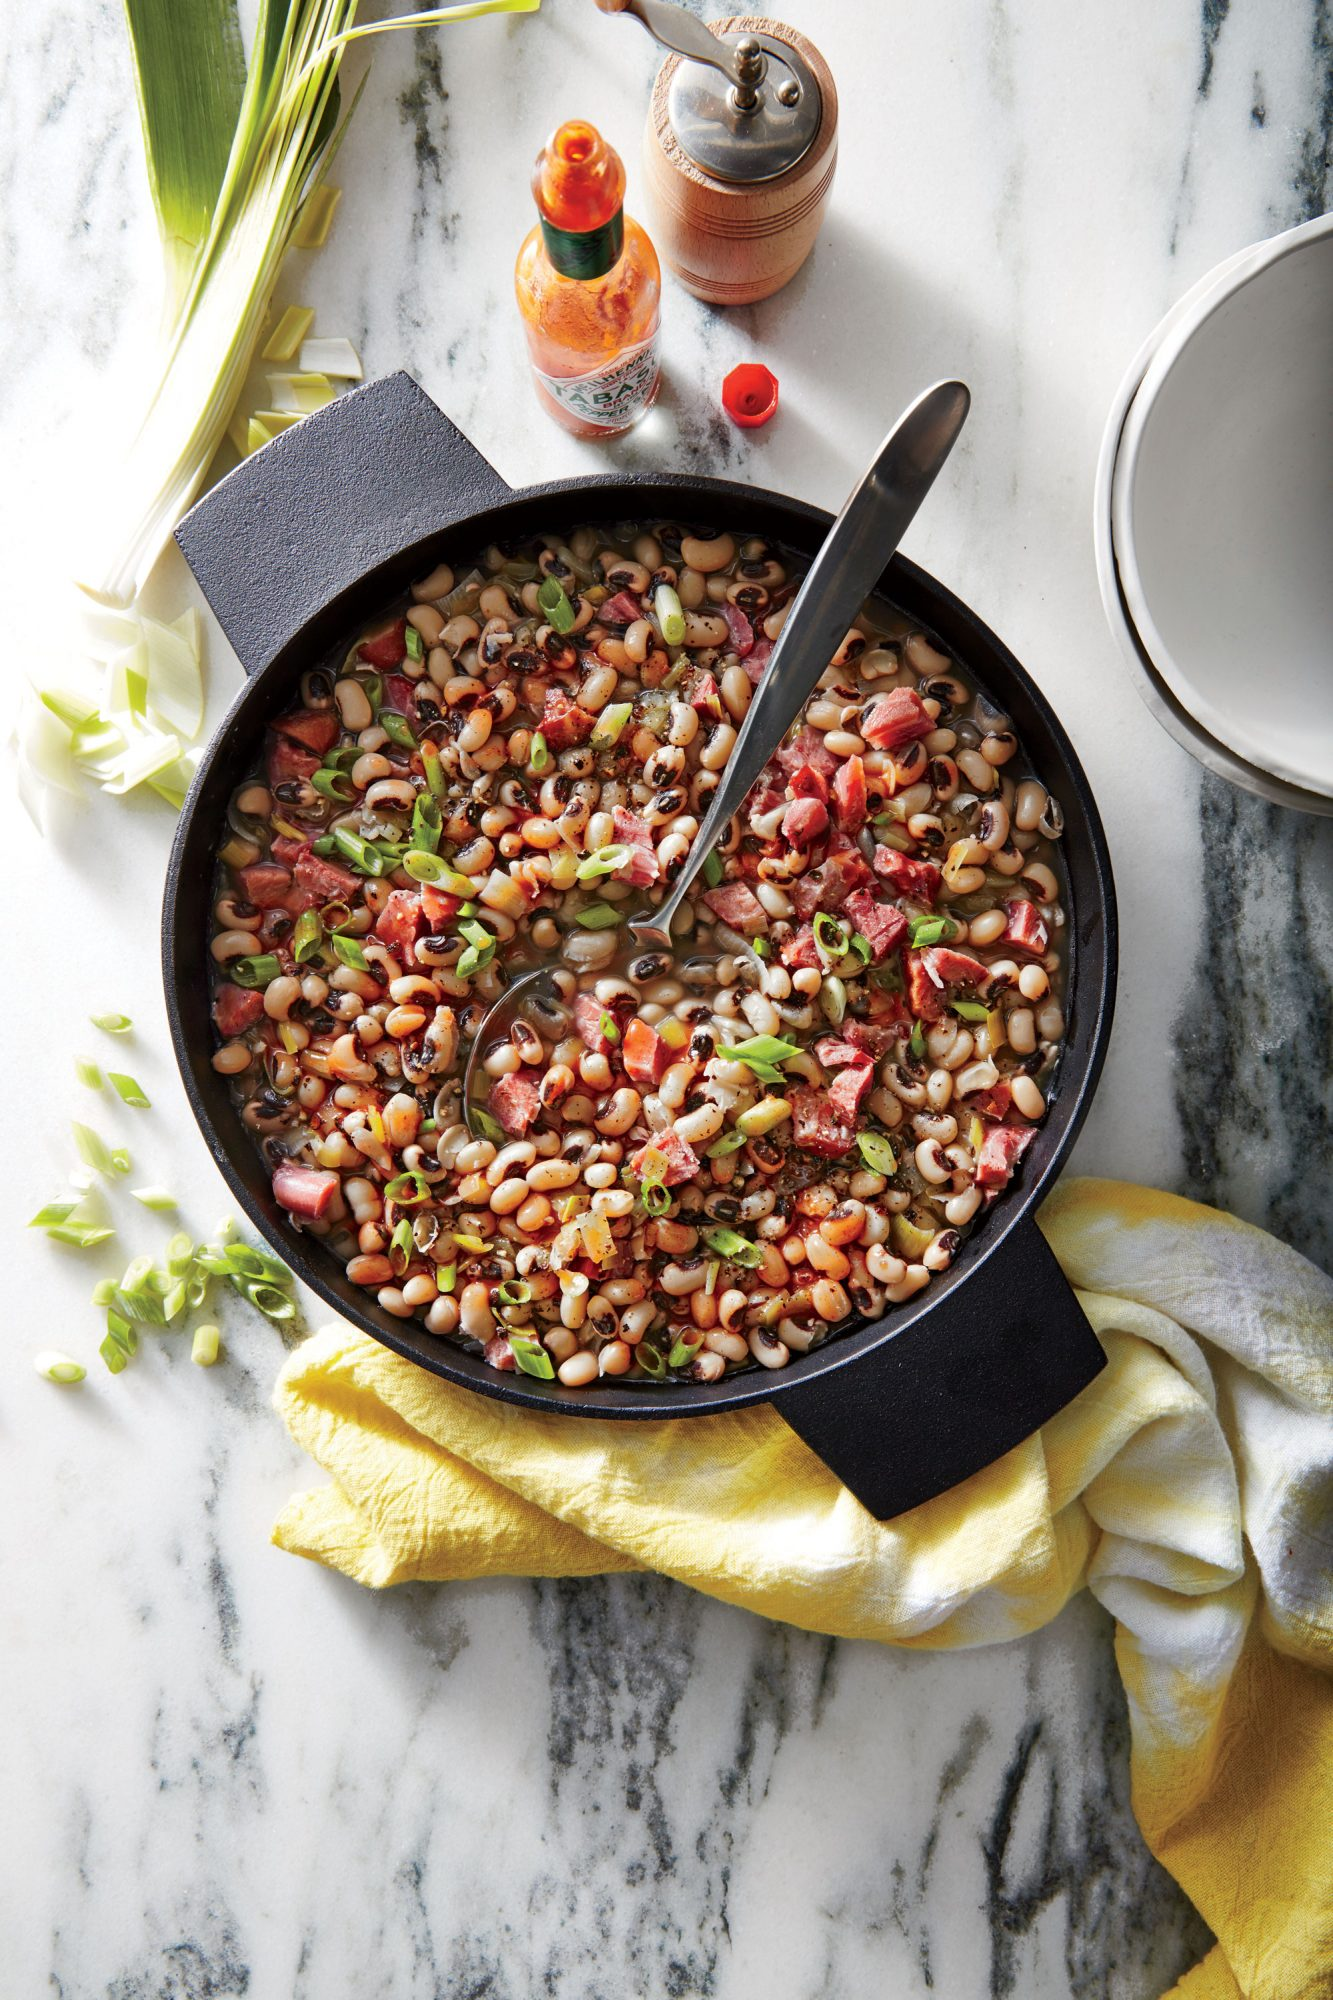 Why We Eat Black-Eyed Peas and Greens on New Year's Day